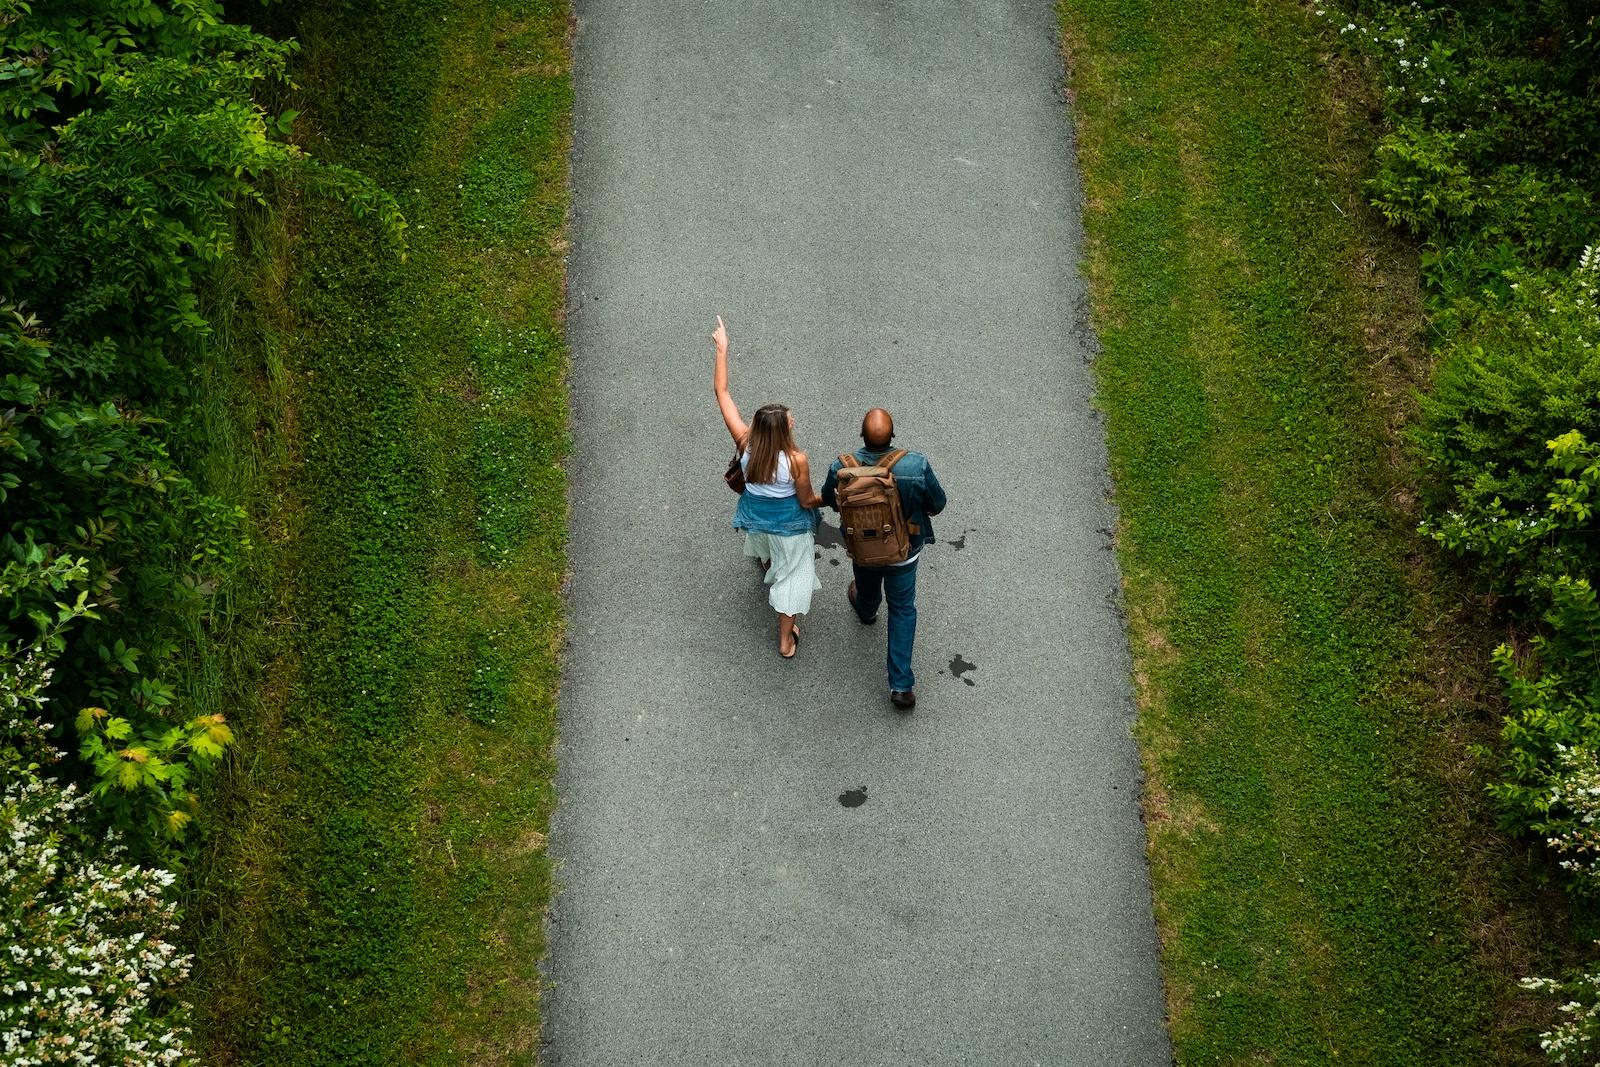 Two people go for walk along a path